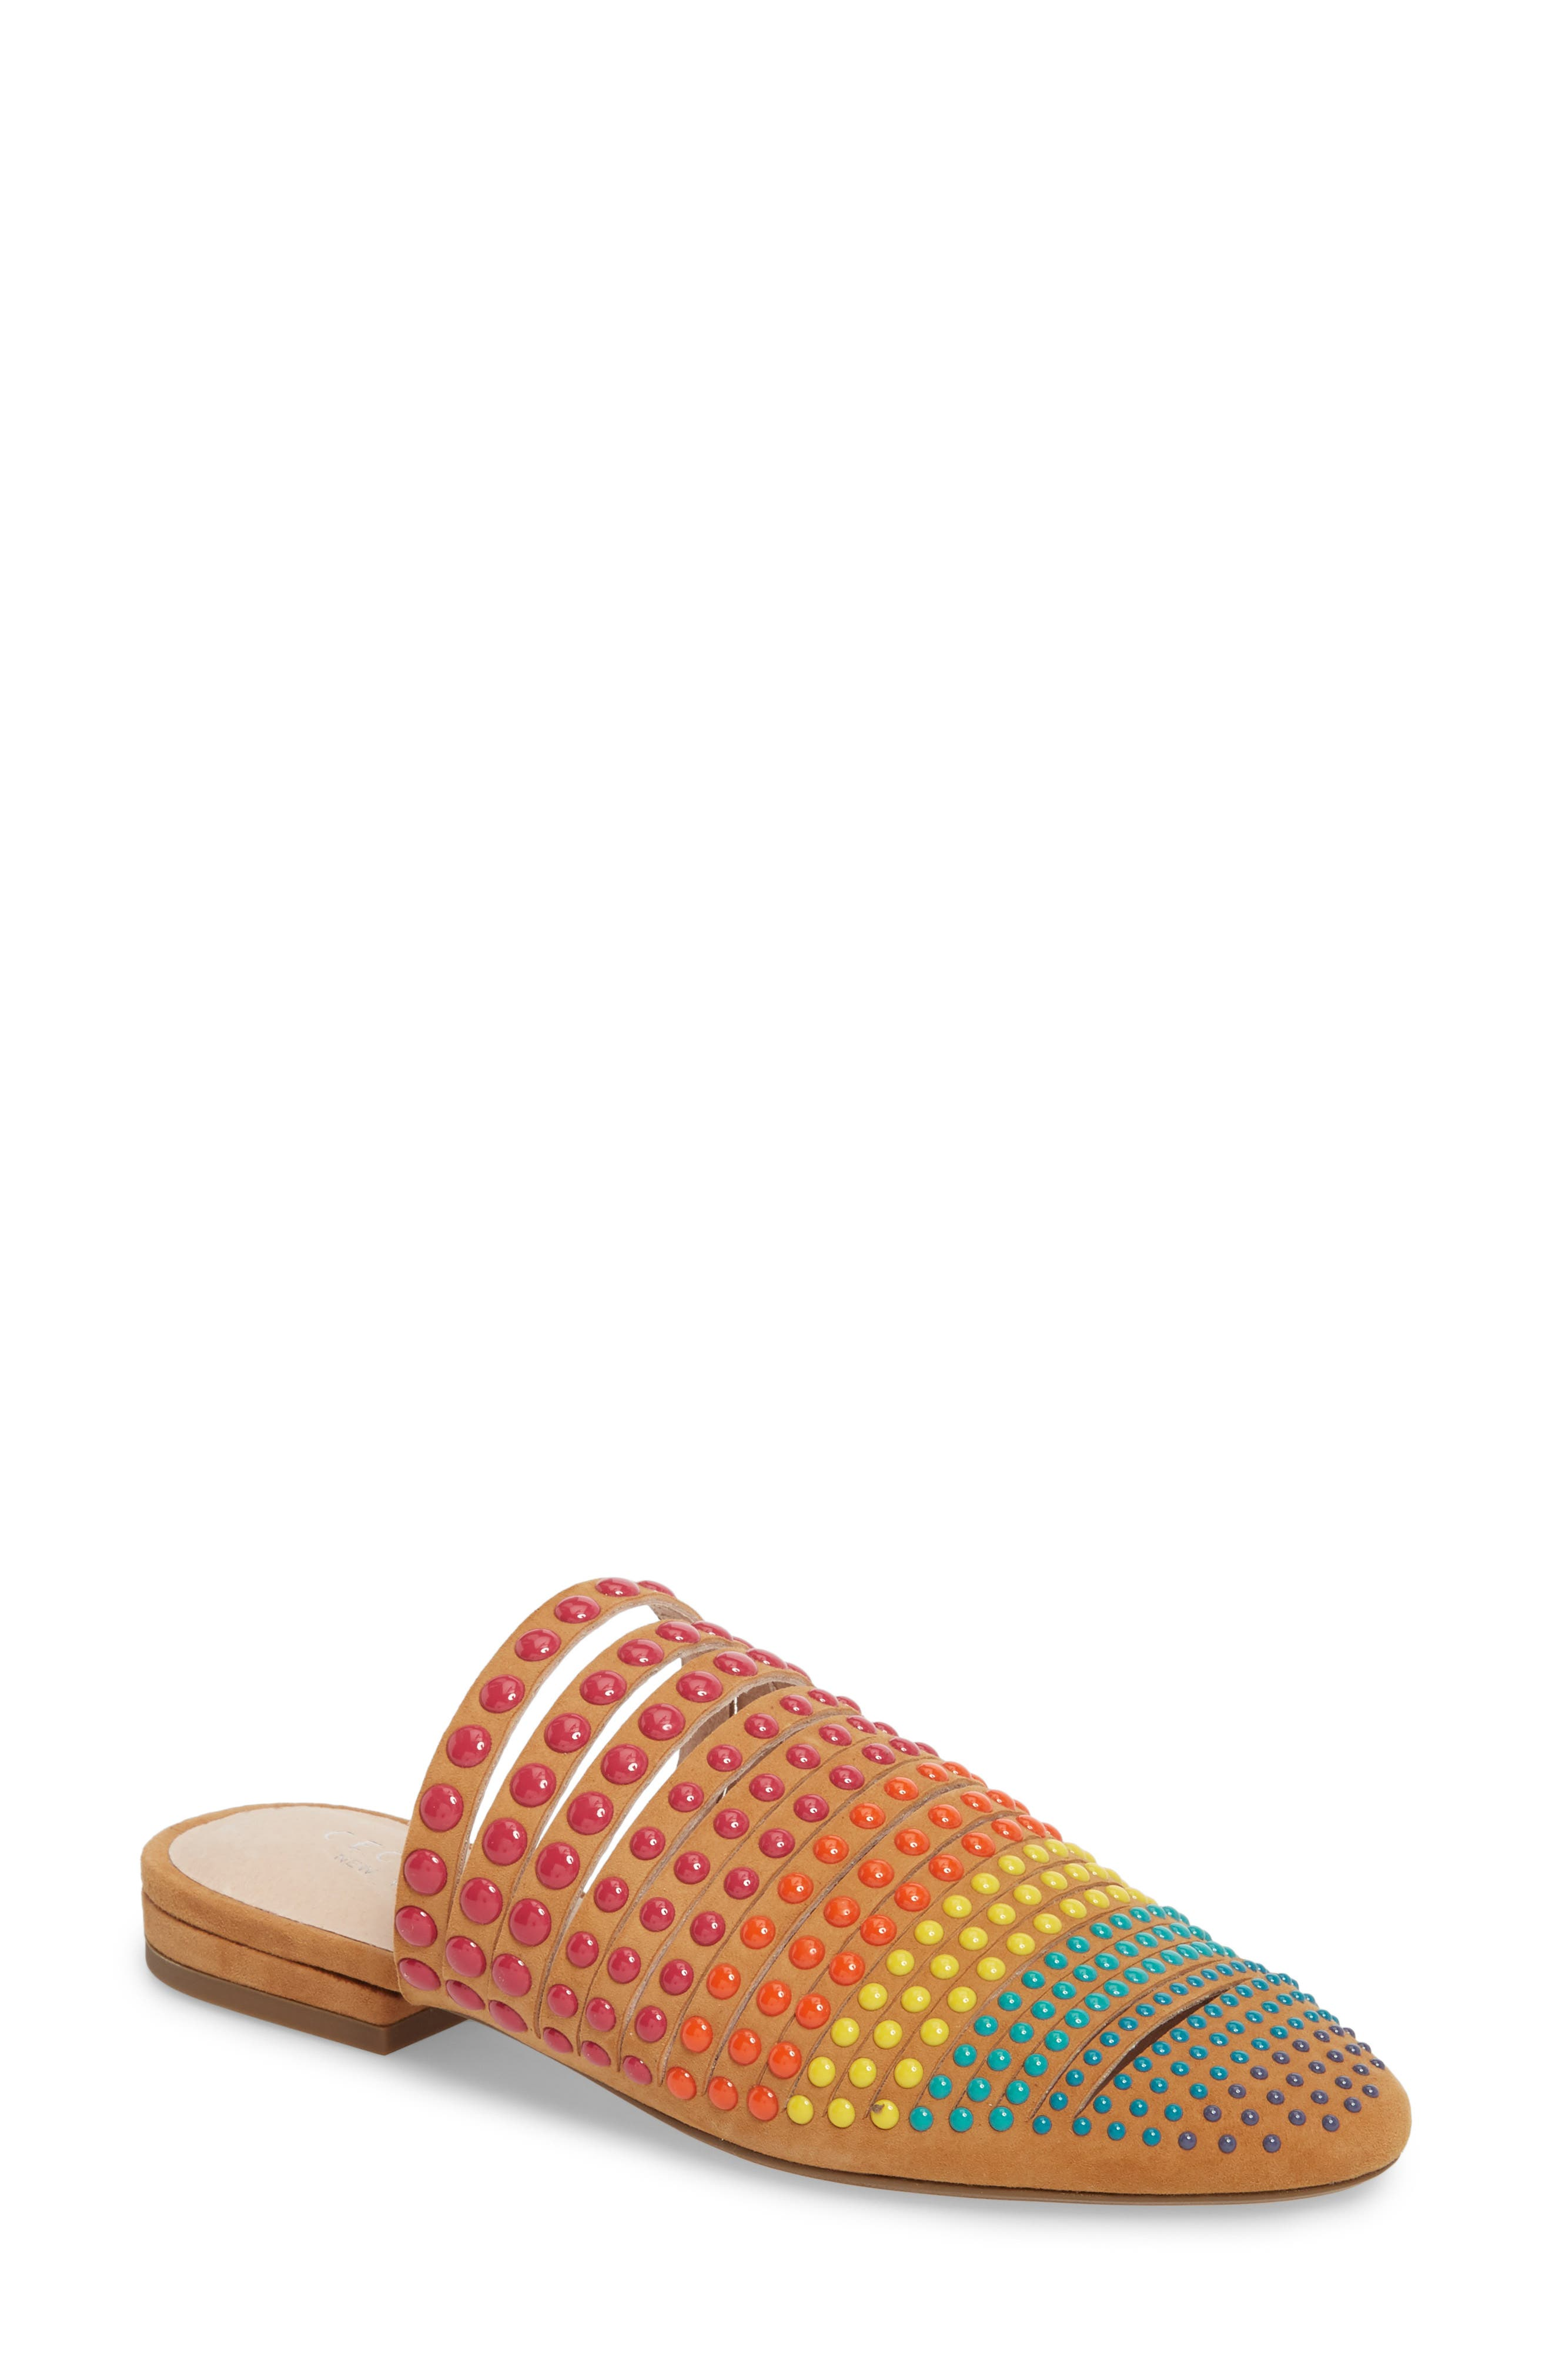 Potz Embellished Slide,                         Main,                         color, Tan Print Suede